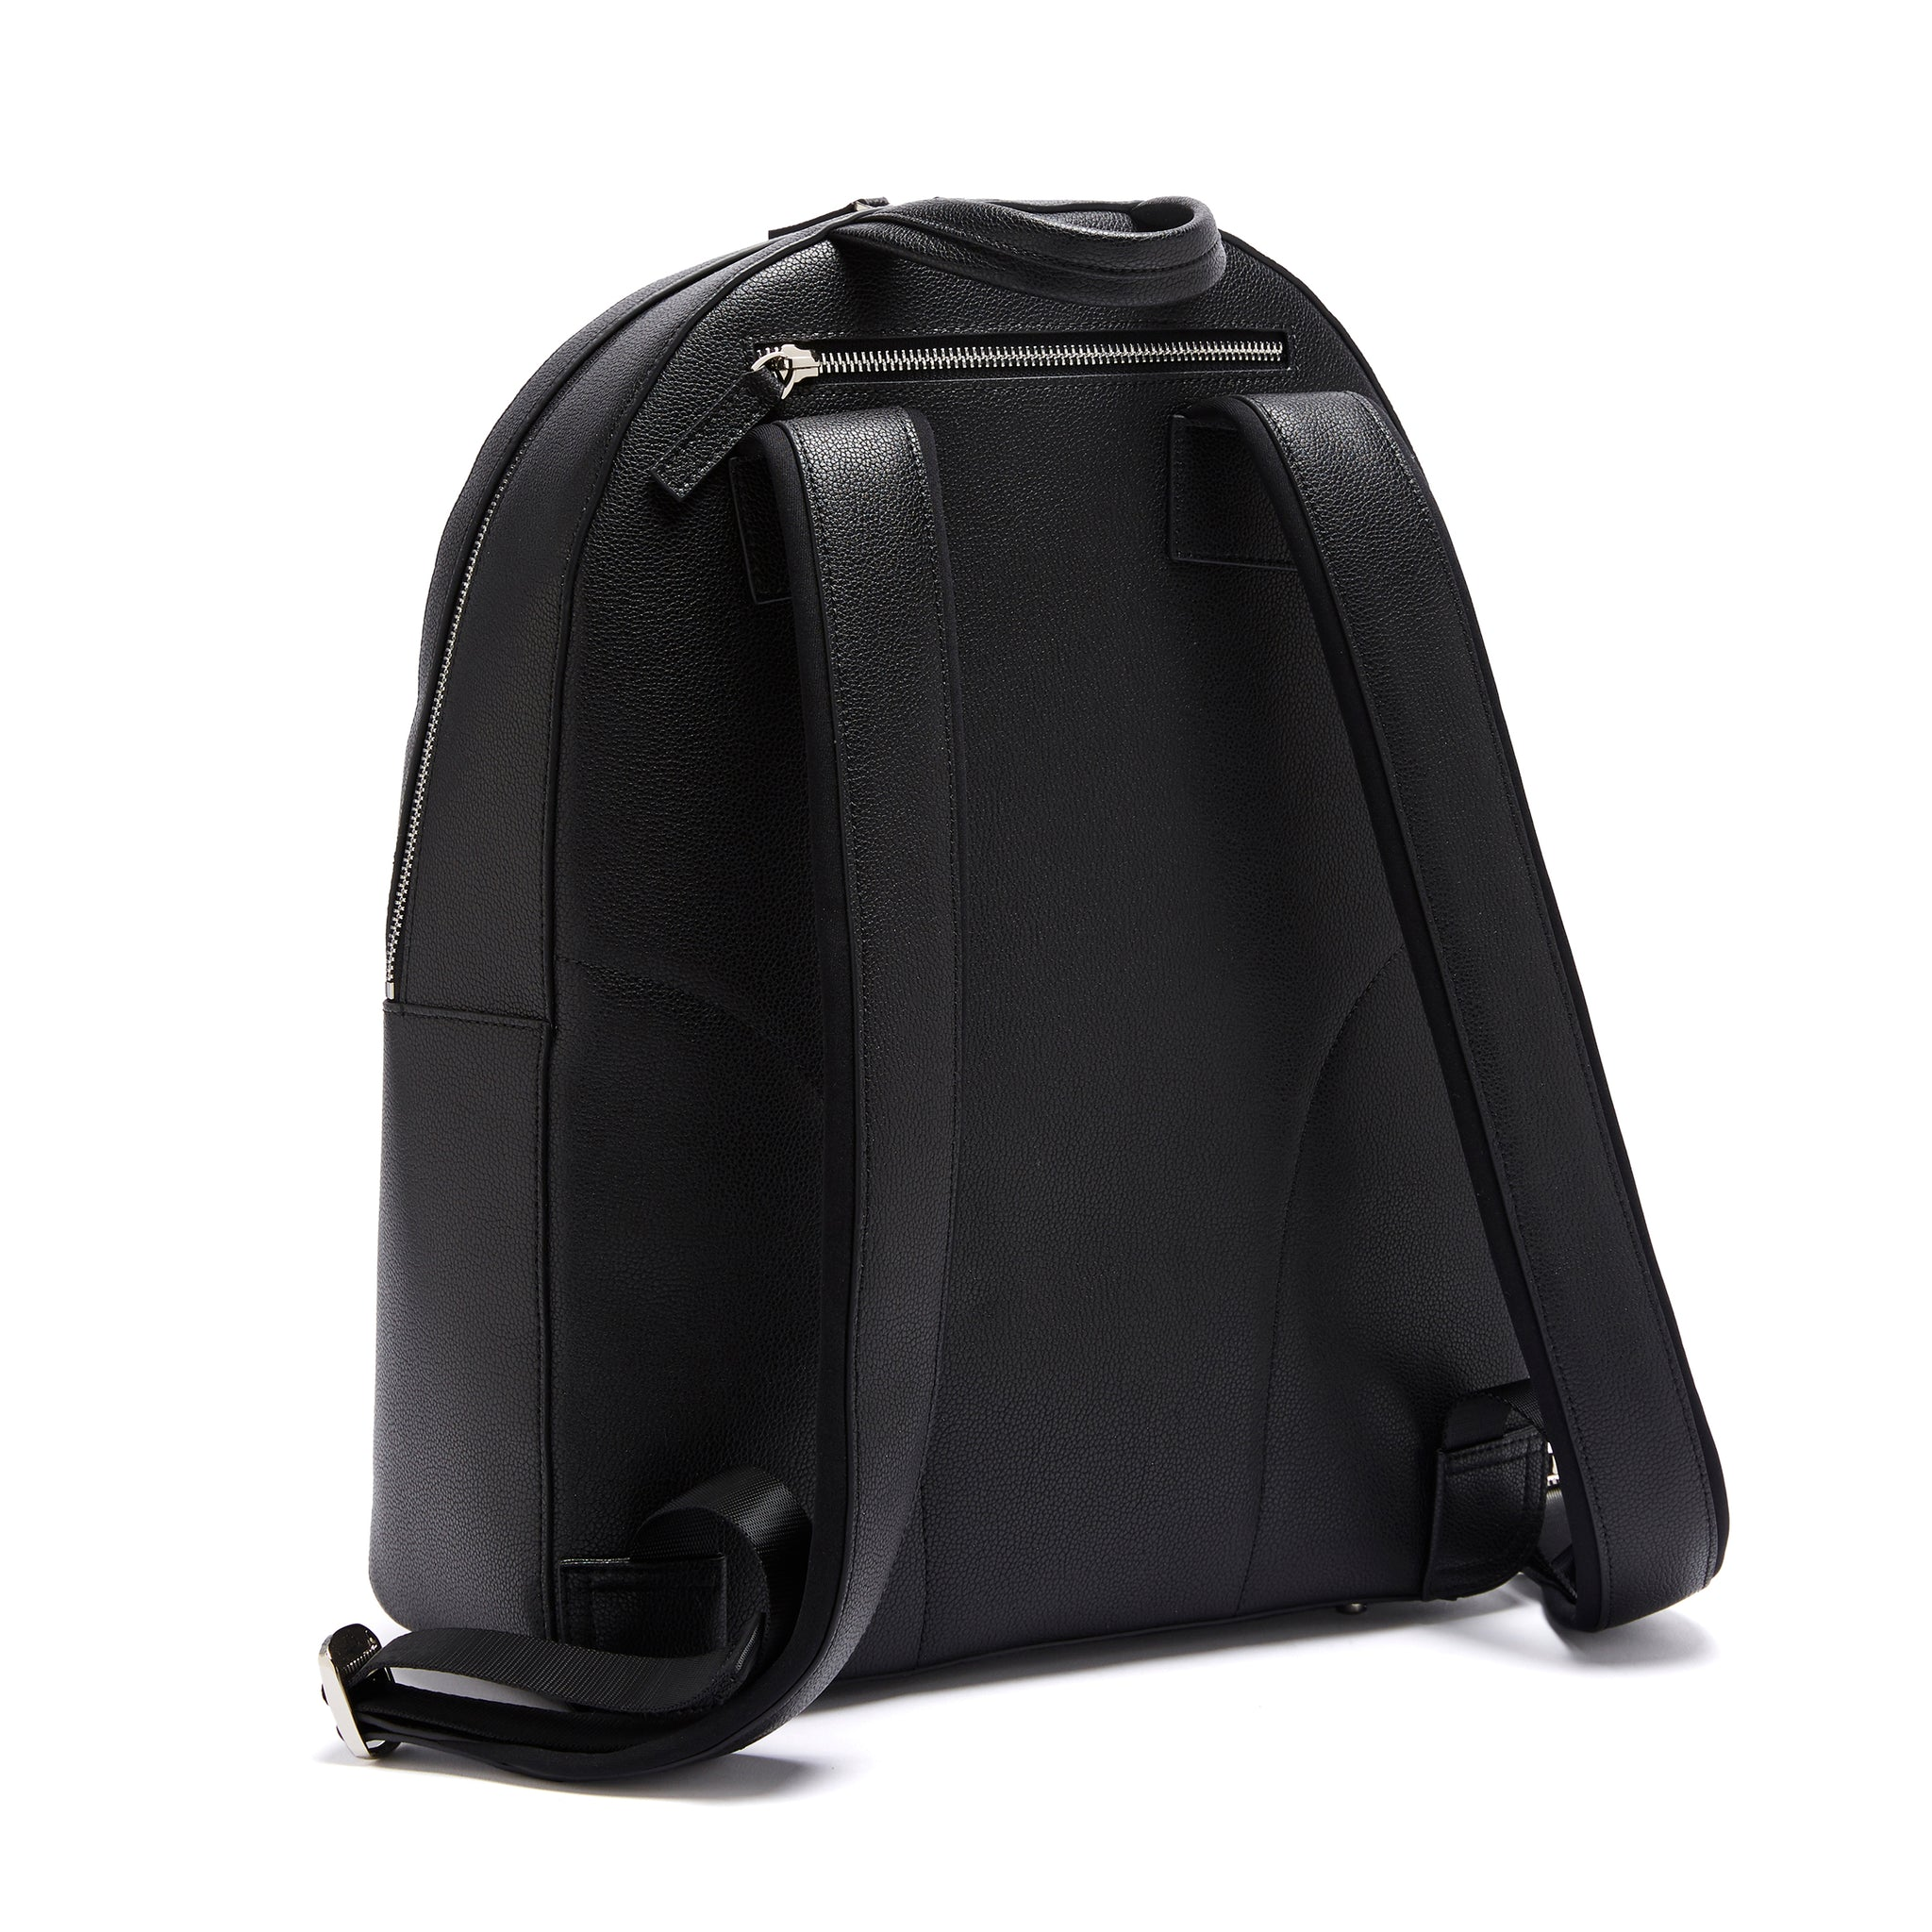 The Bolvaint Silouane Backpack